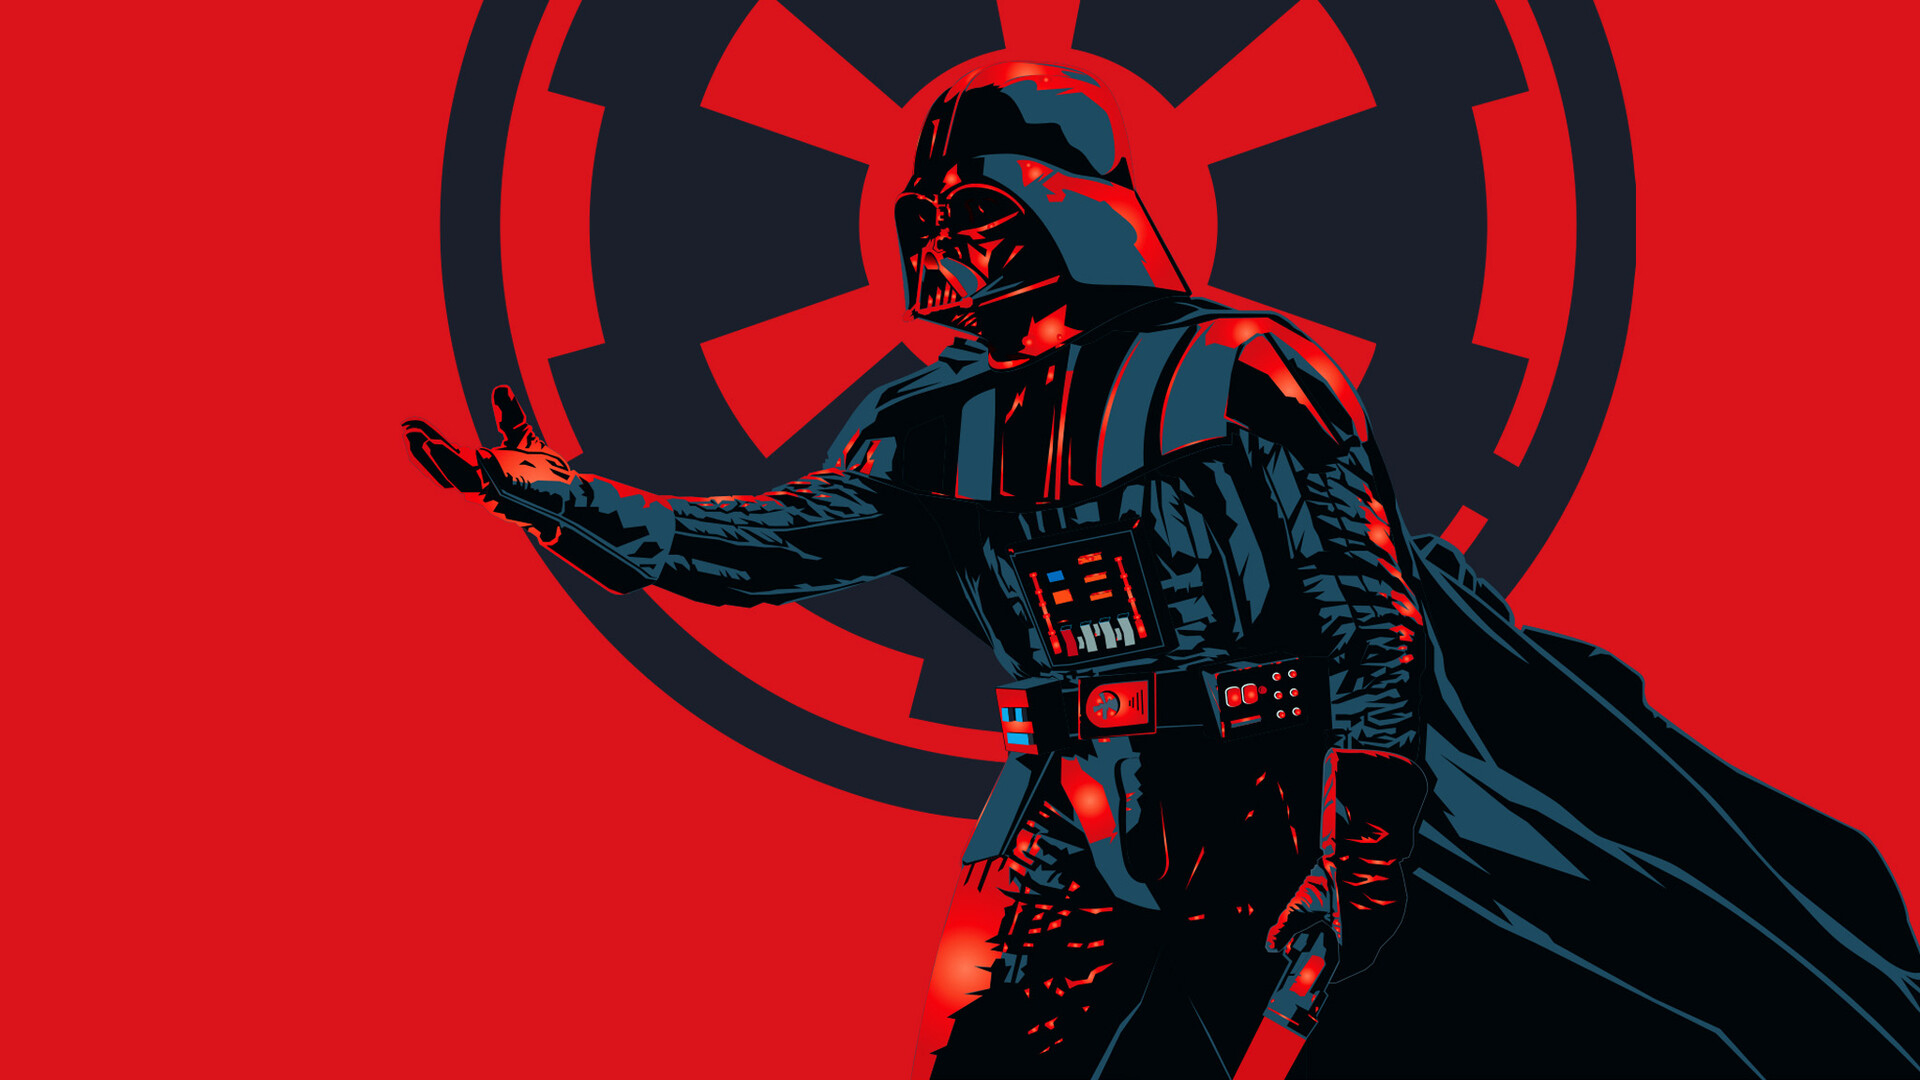 Desktop Wallpaper Darth Vader Heroscreen Cool Wallpapers